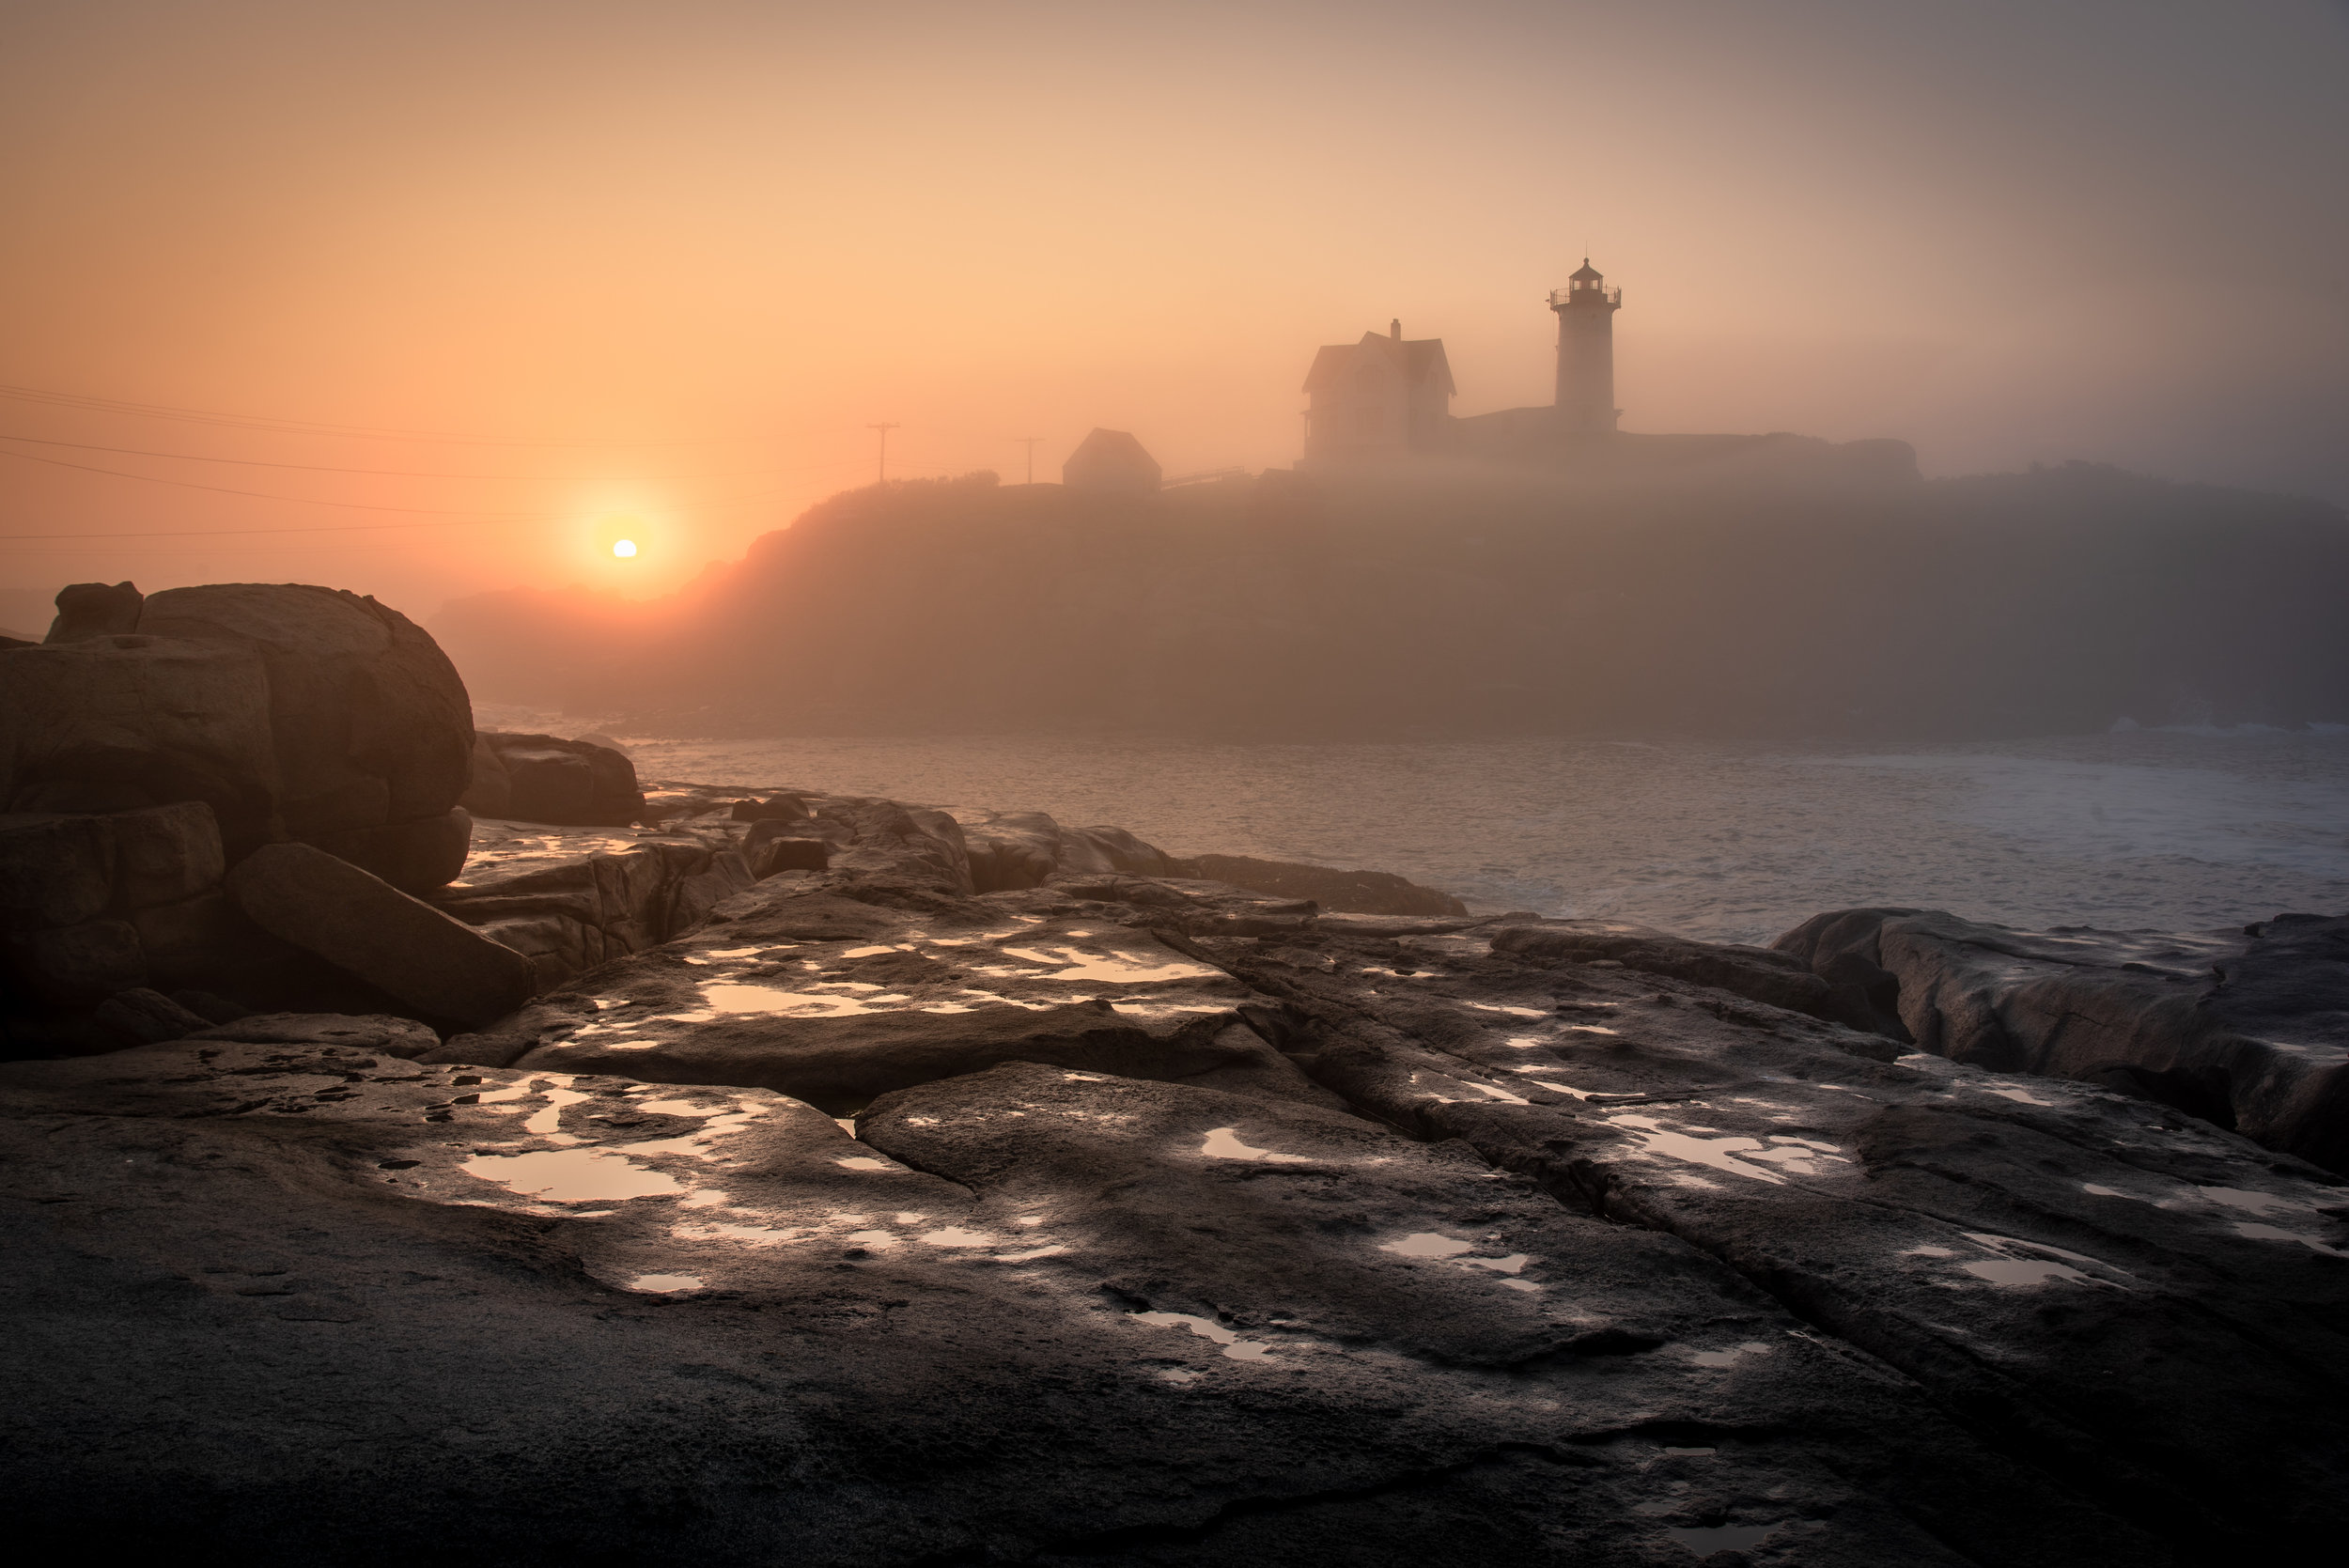 The Sun peeks over the ridge of the rocky shores of Cape Neddick. The tide slowly rises and crashes against the now illuminated rocks. The sea mist rolls in enveloping myself and the lighthouse. A new day has begun and I am surrounded by all of the elements of nature and it makes me happy and looking forward to things to come.